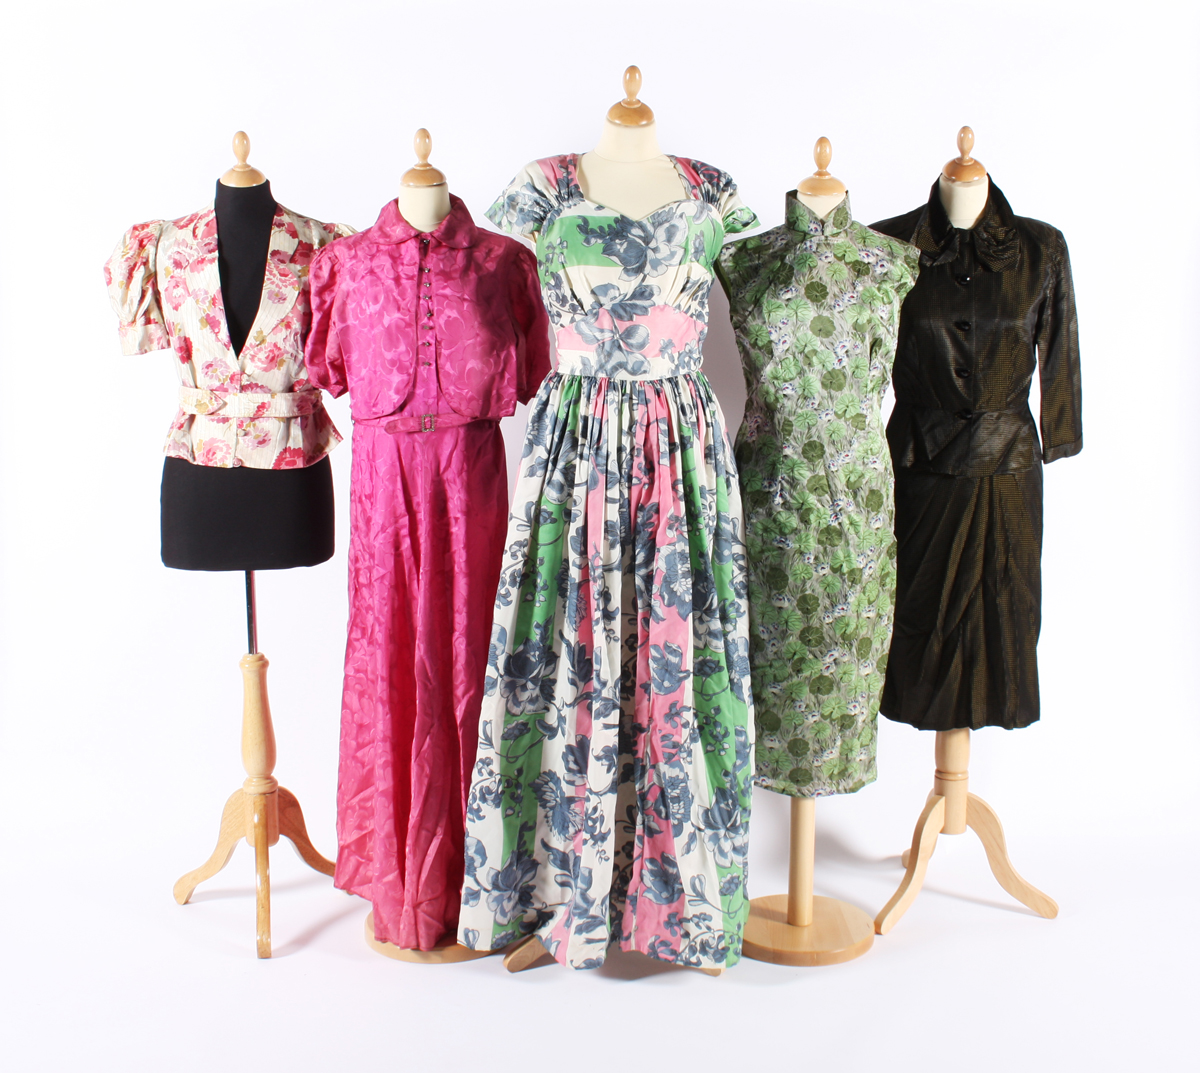 Group of 1940's dresses - image by Eleanor Keene